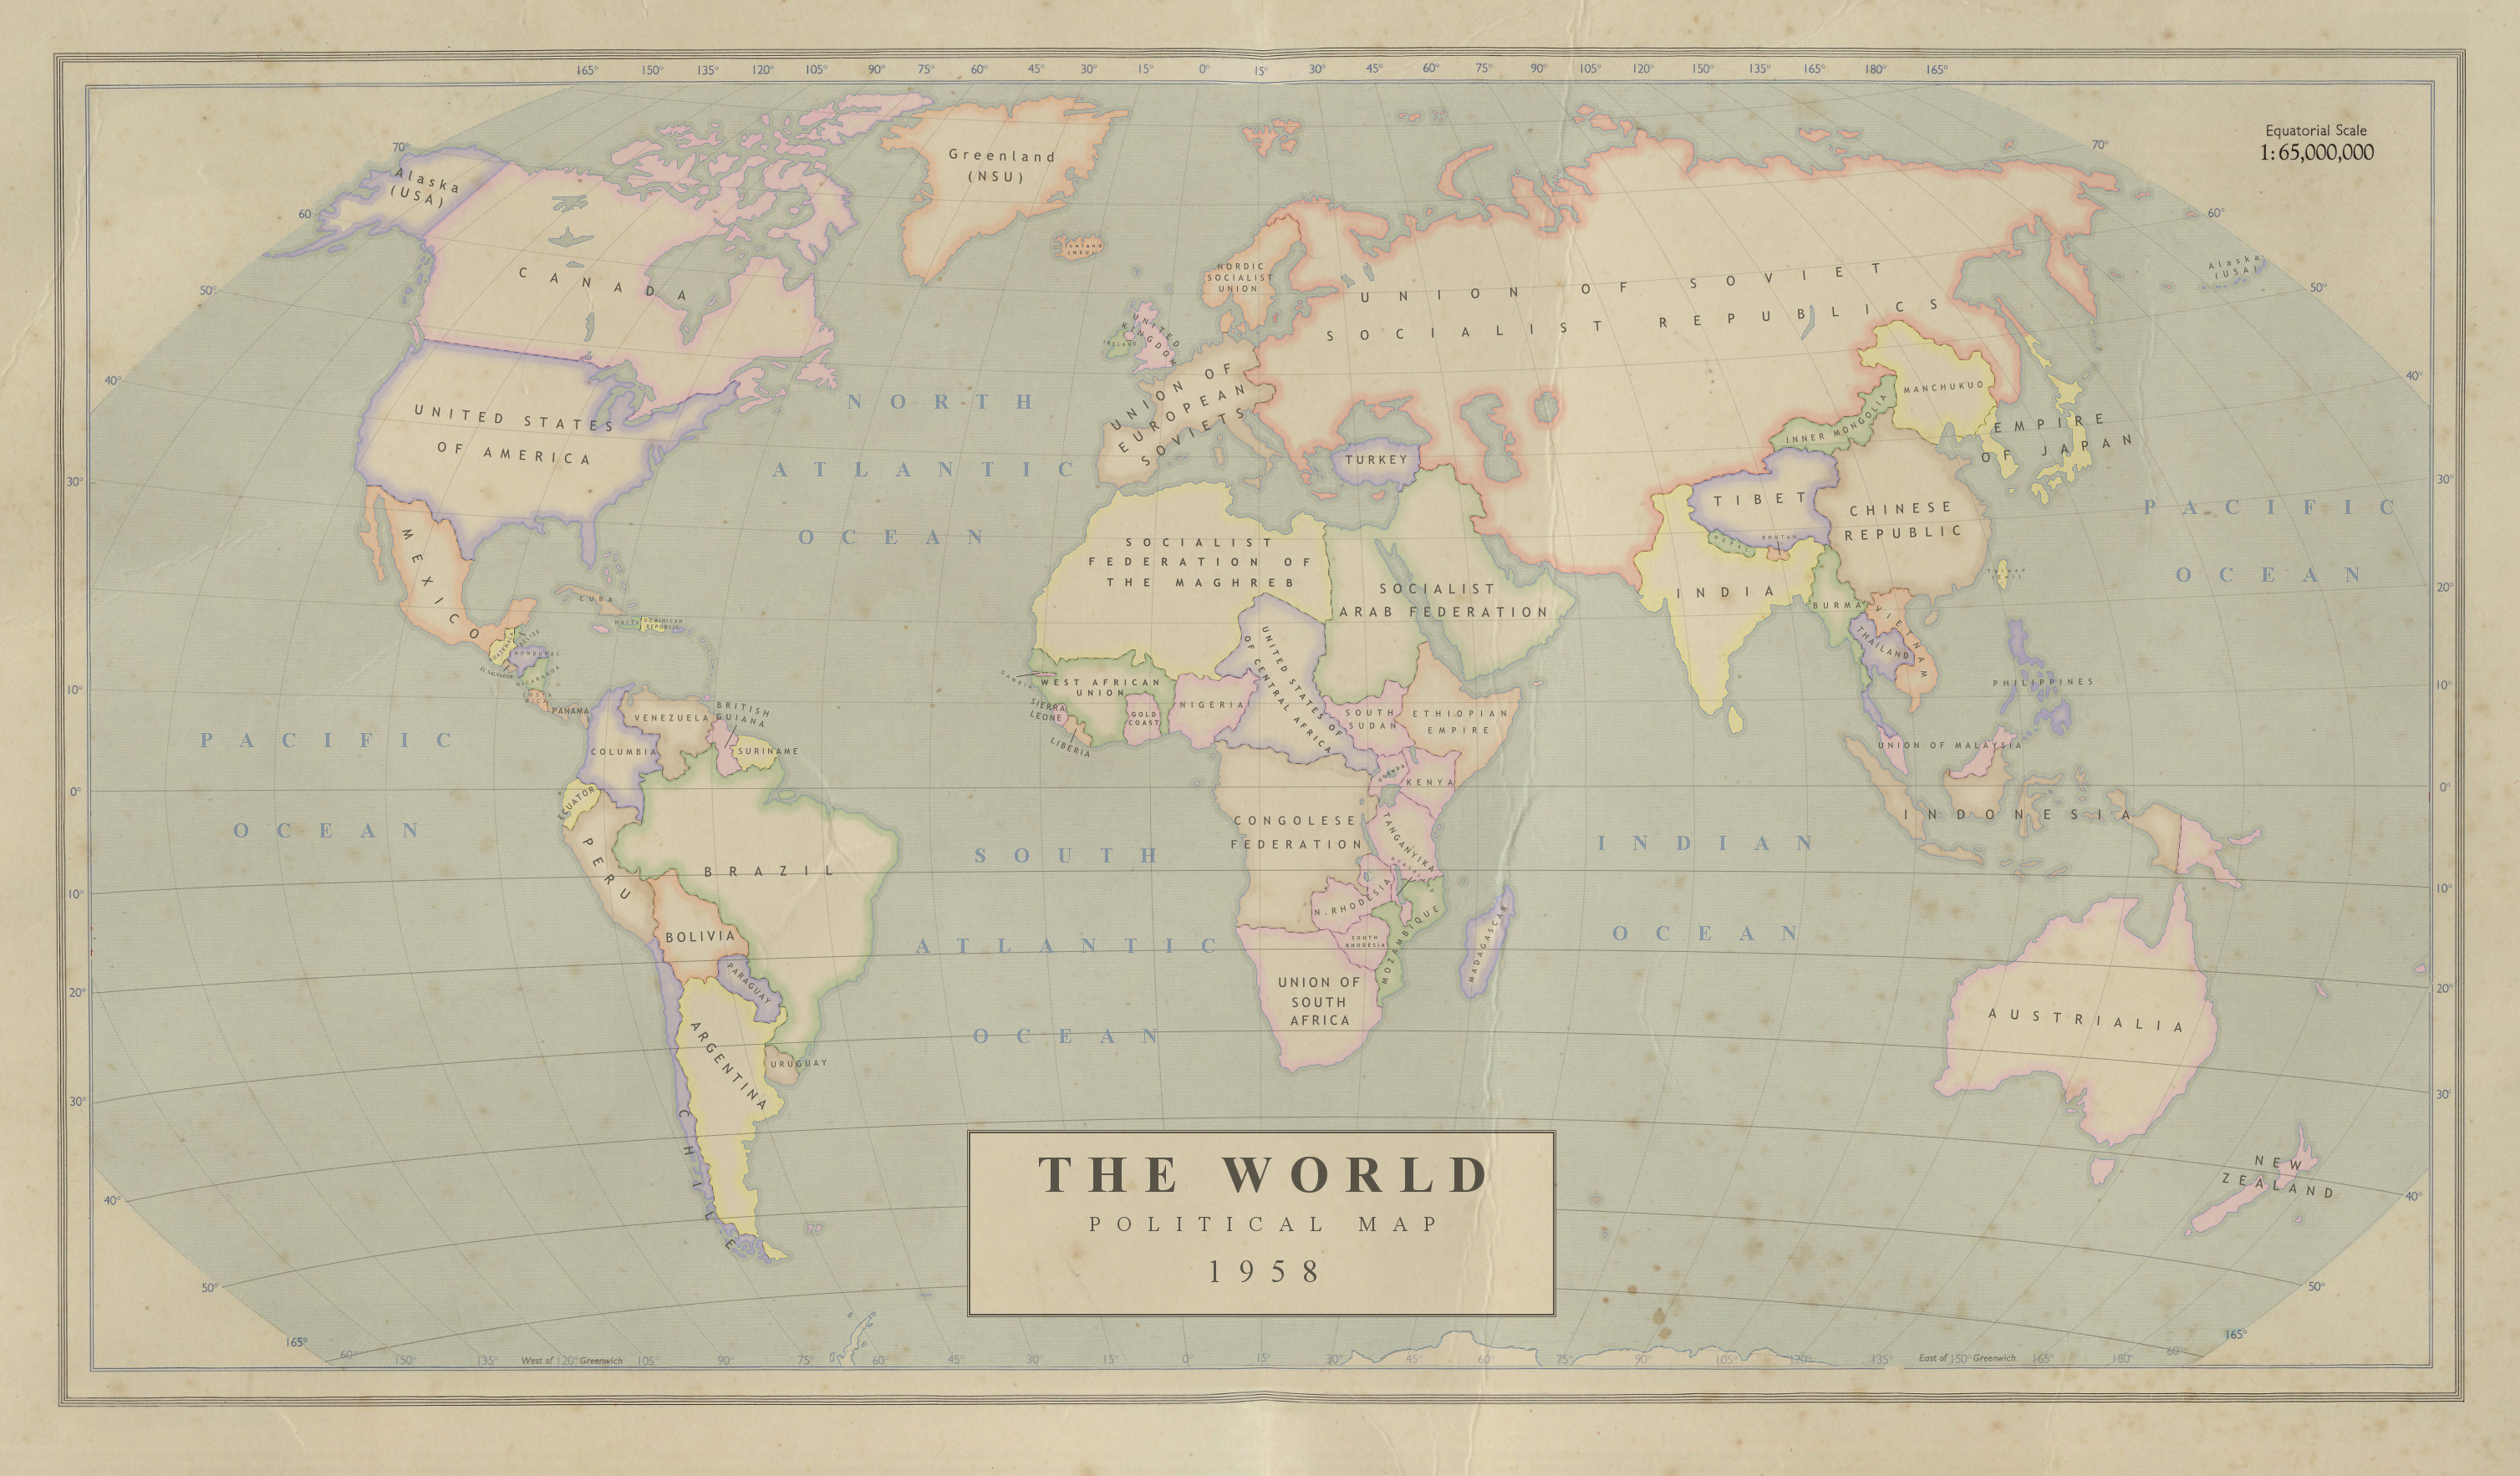 The World in 1958 Political Map